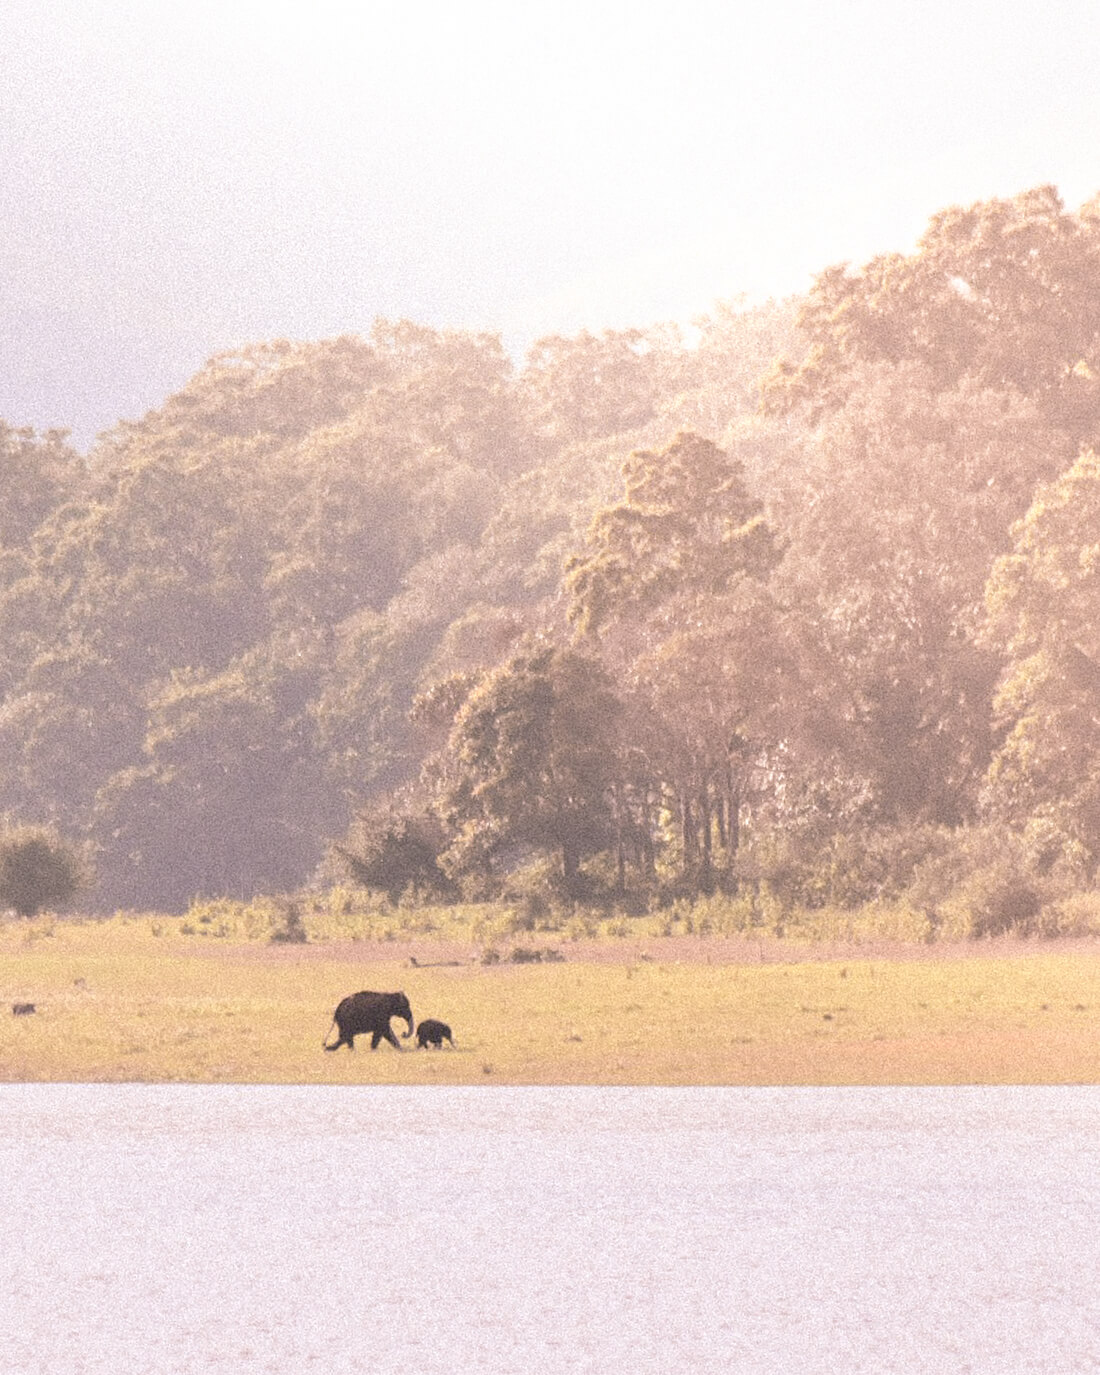 A MAGICAL TRIP TO PERIYAR TIGER RESERVE